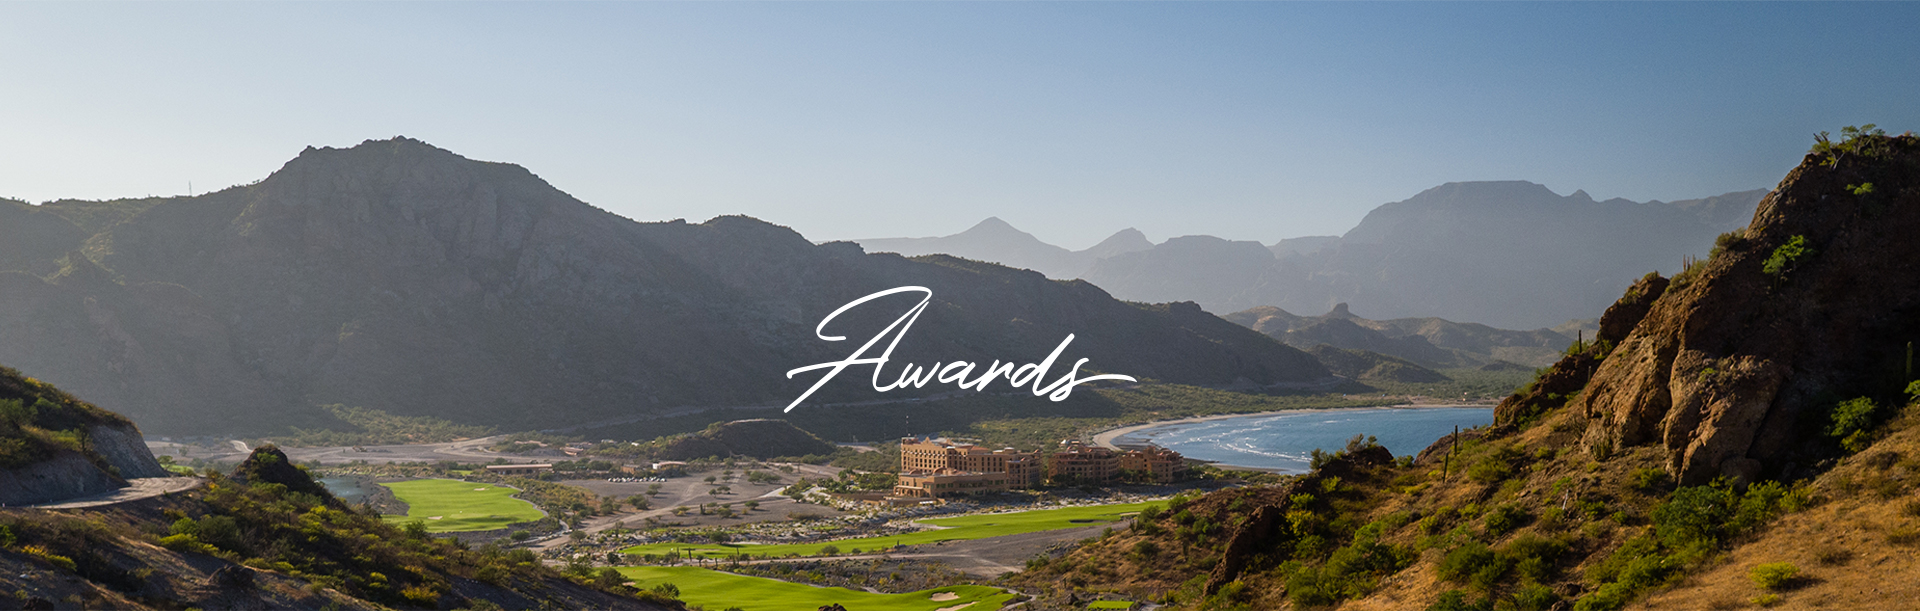 Awards in Villa del Palmar at The Islands of Loreto